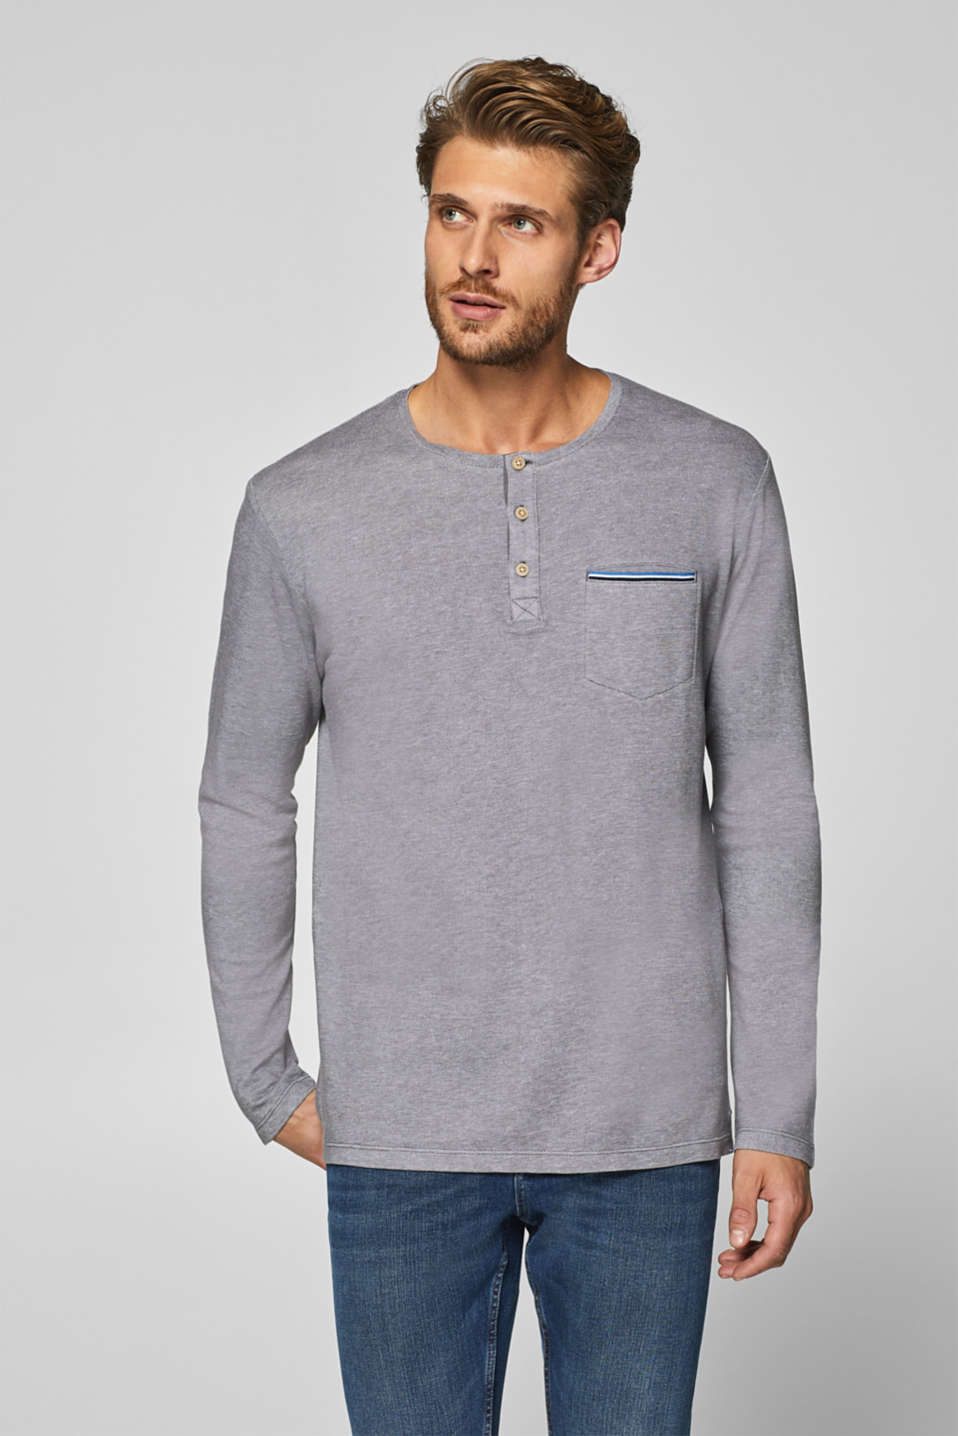 ae2ccc30 Esprit - Jersey long sleeve top with a Henley neckline at our Online ...